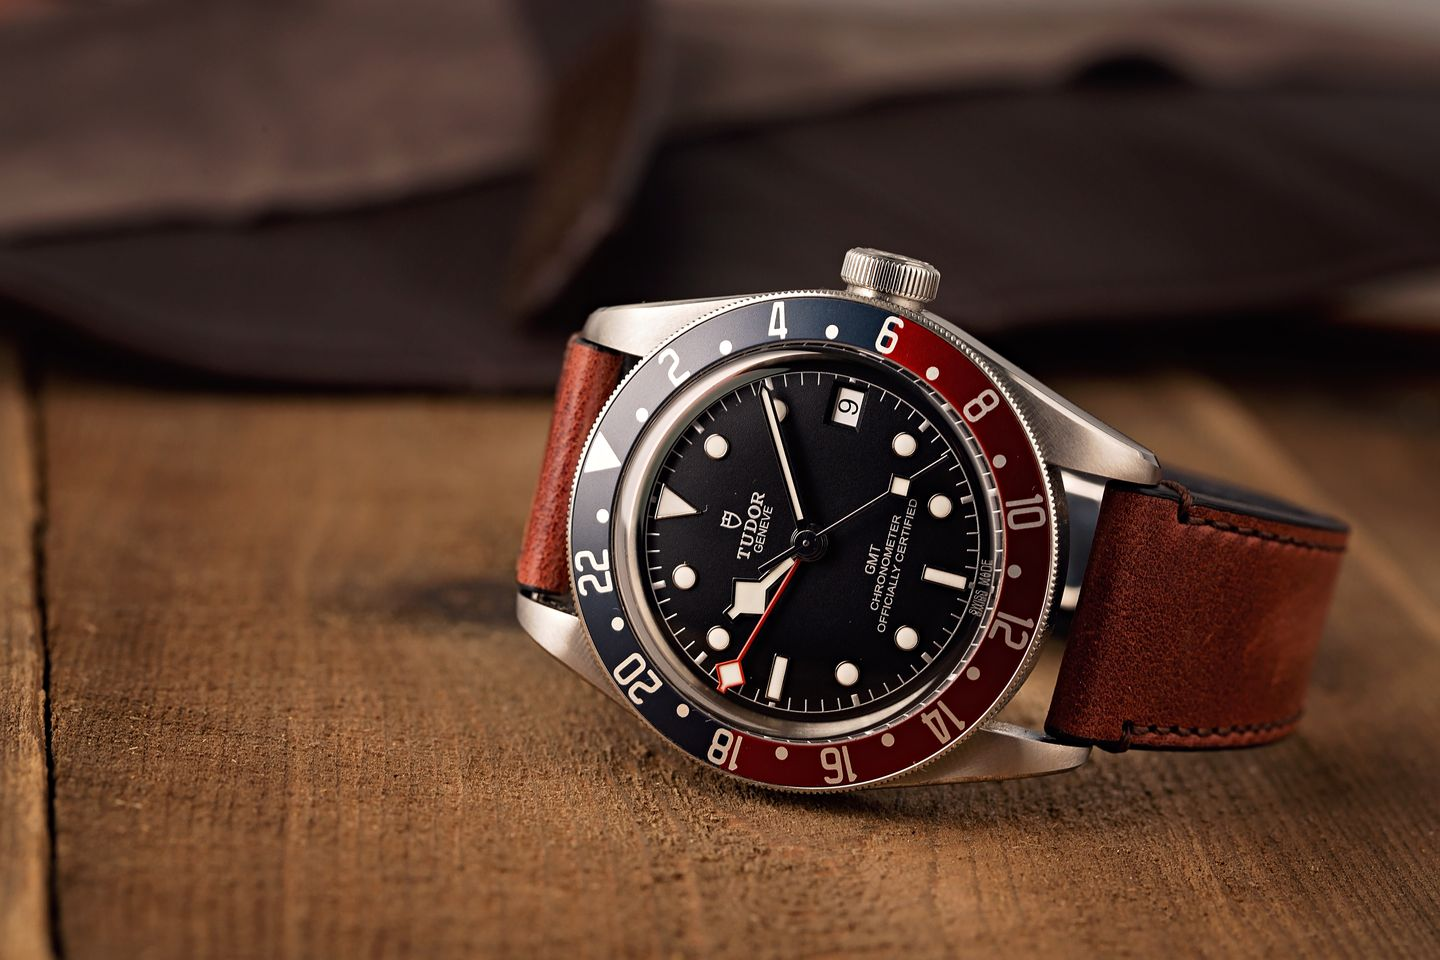 Rolex Yacht-Master 42 vs Tudor Black Bay